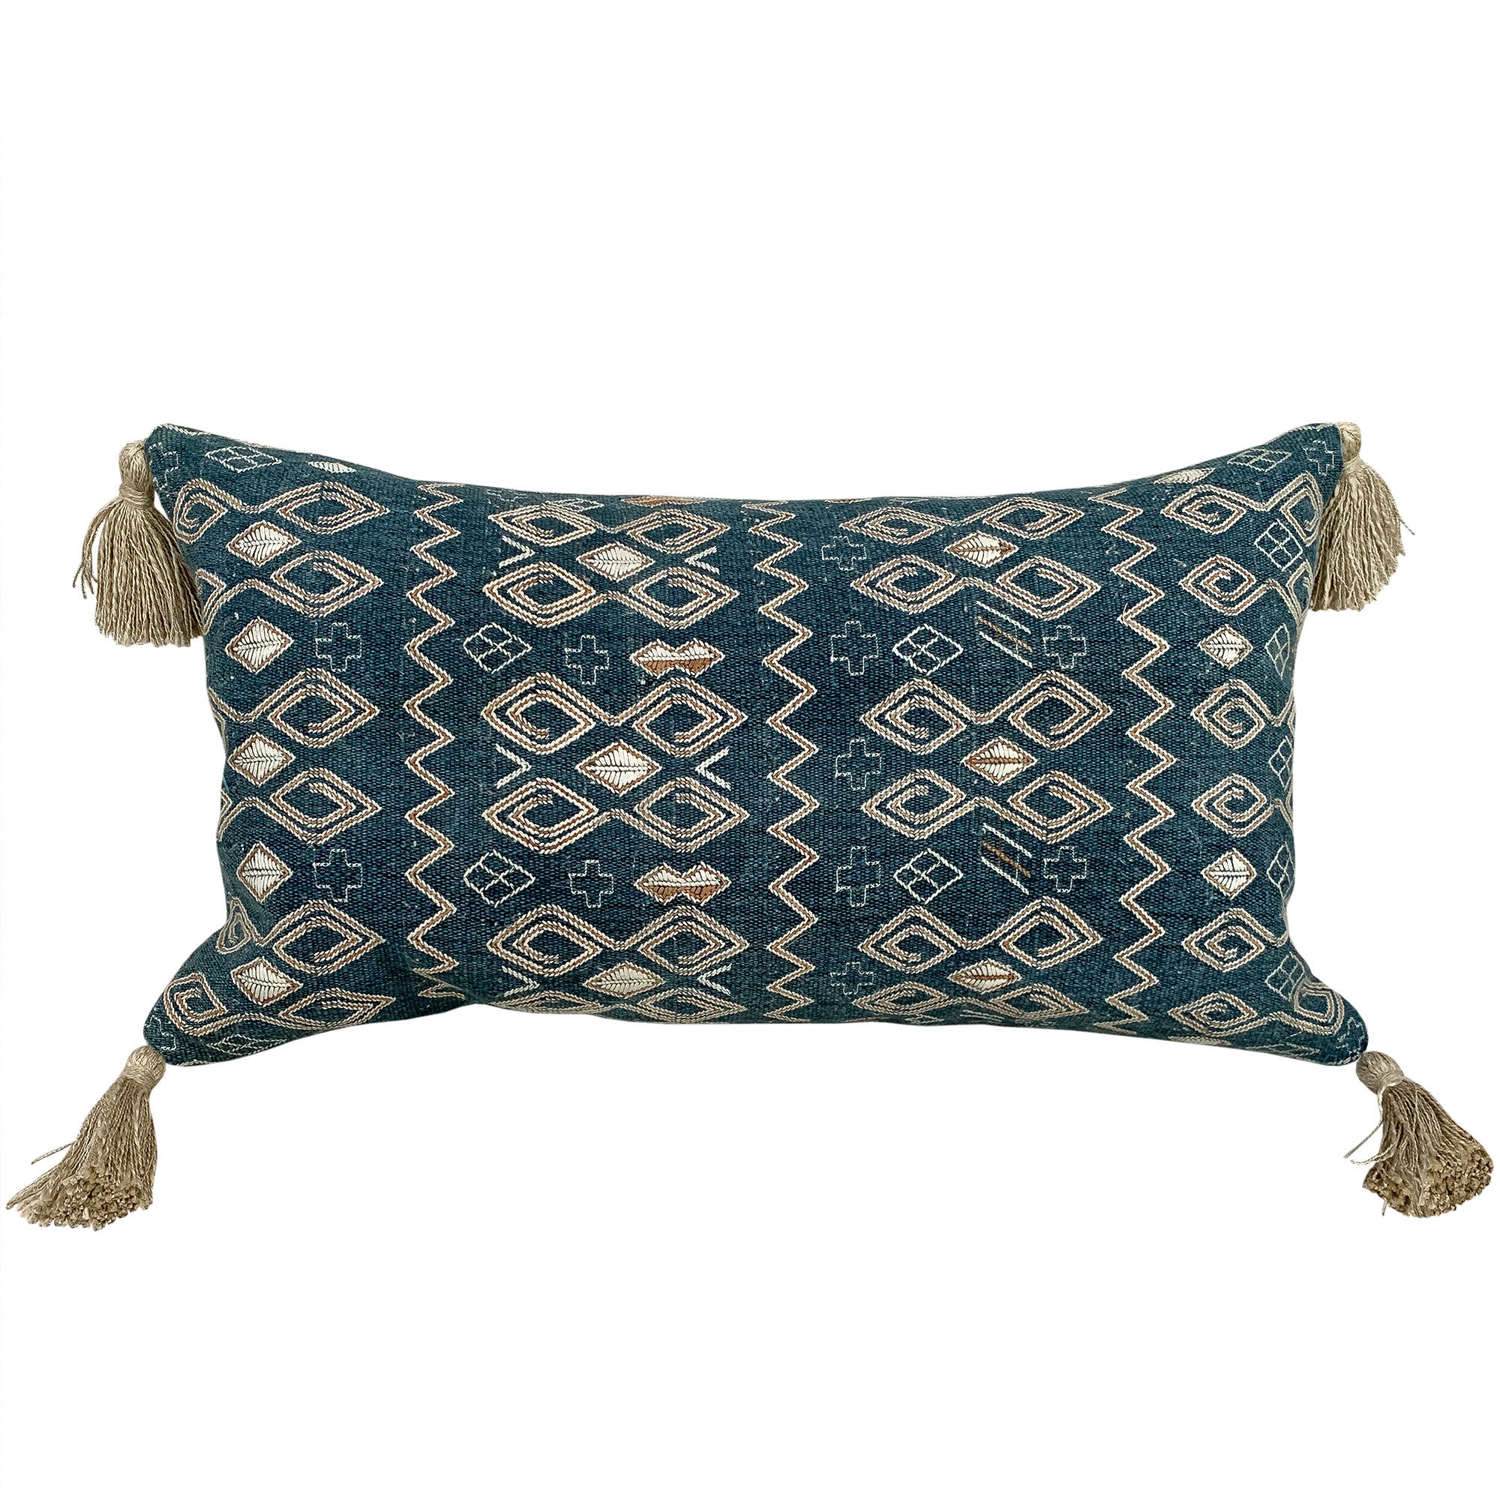 Amanatun cushion with tassels